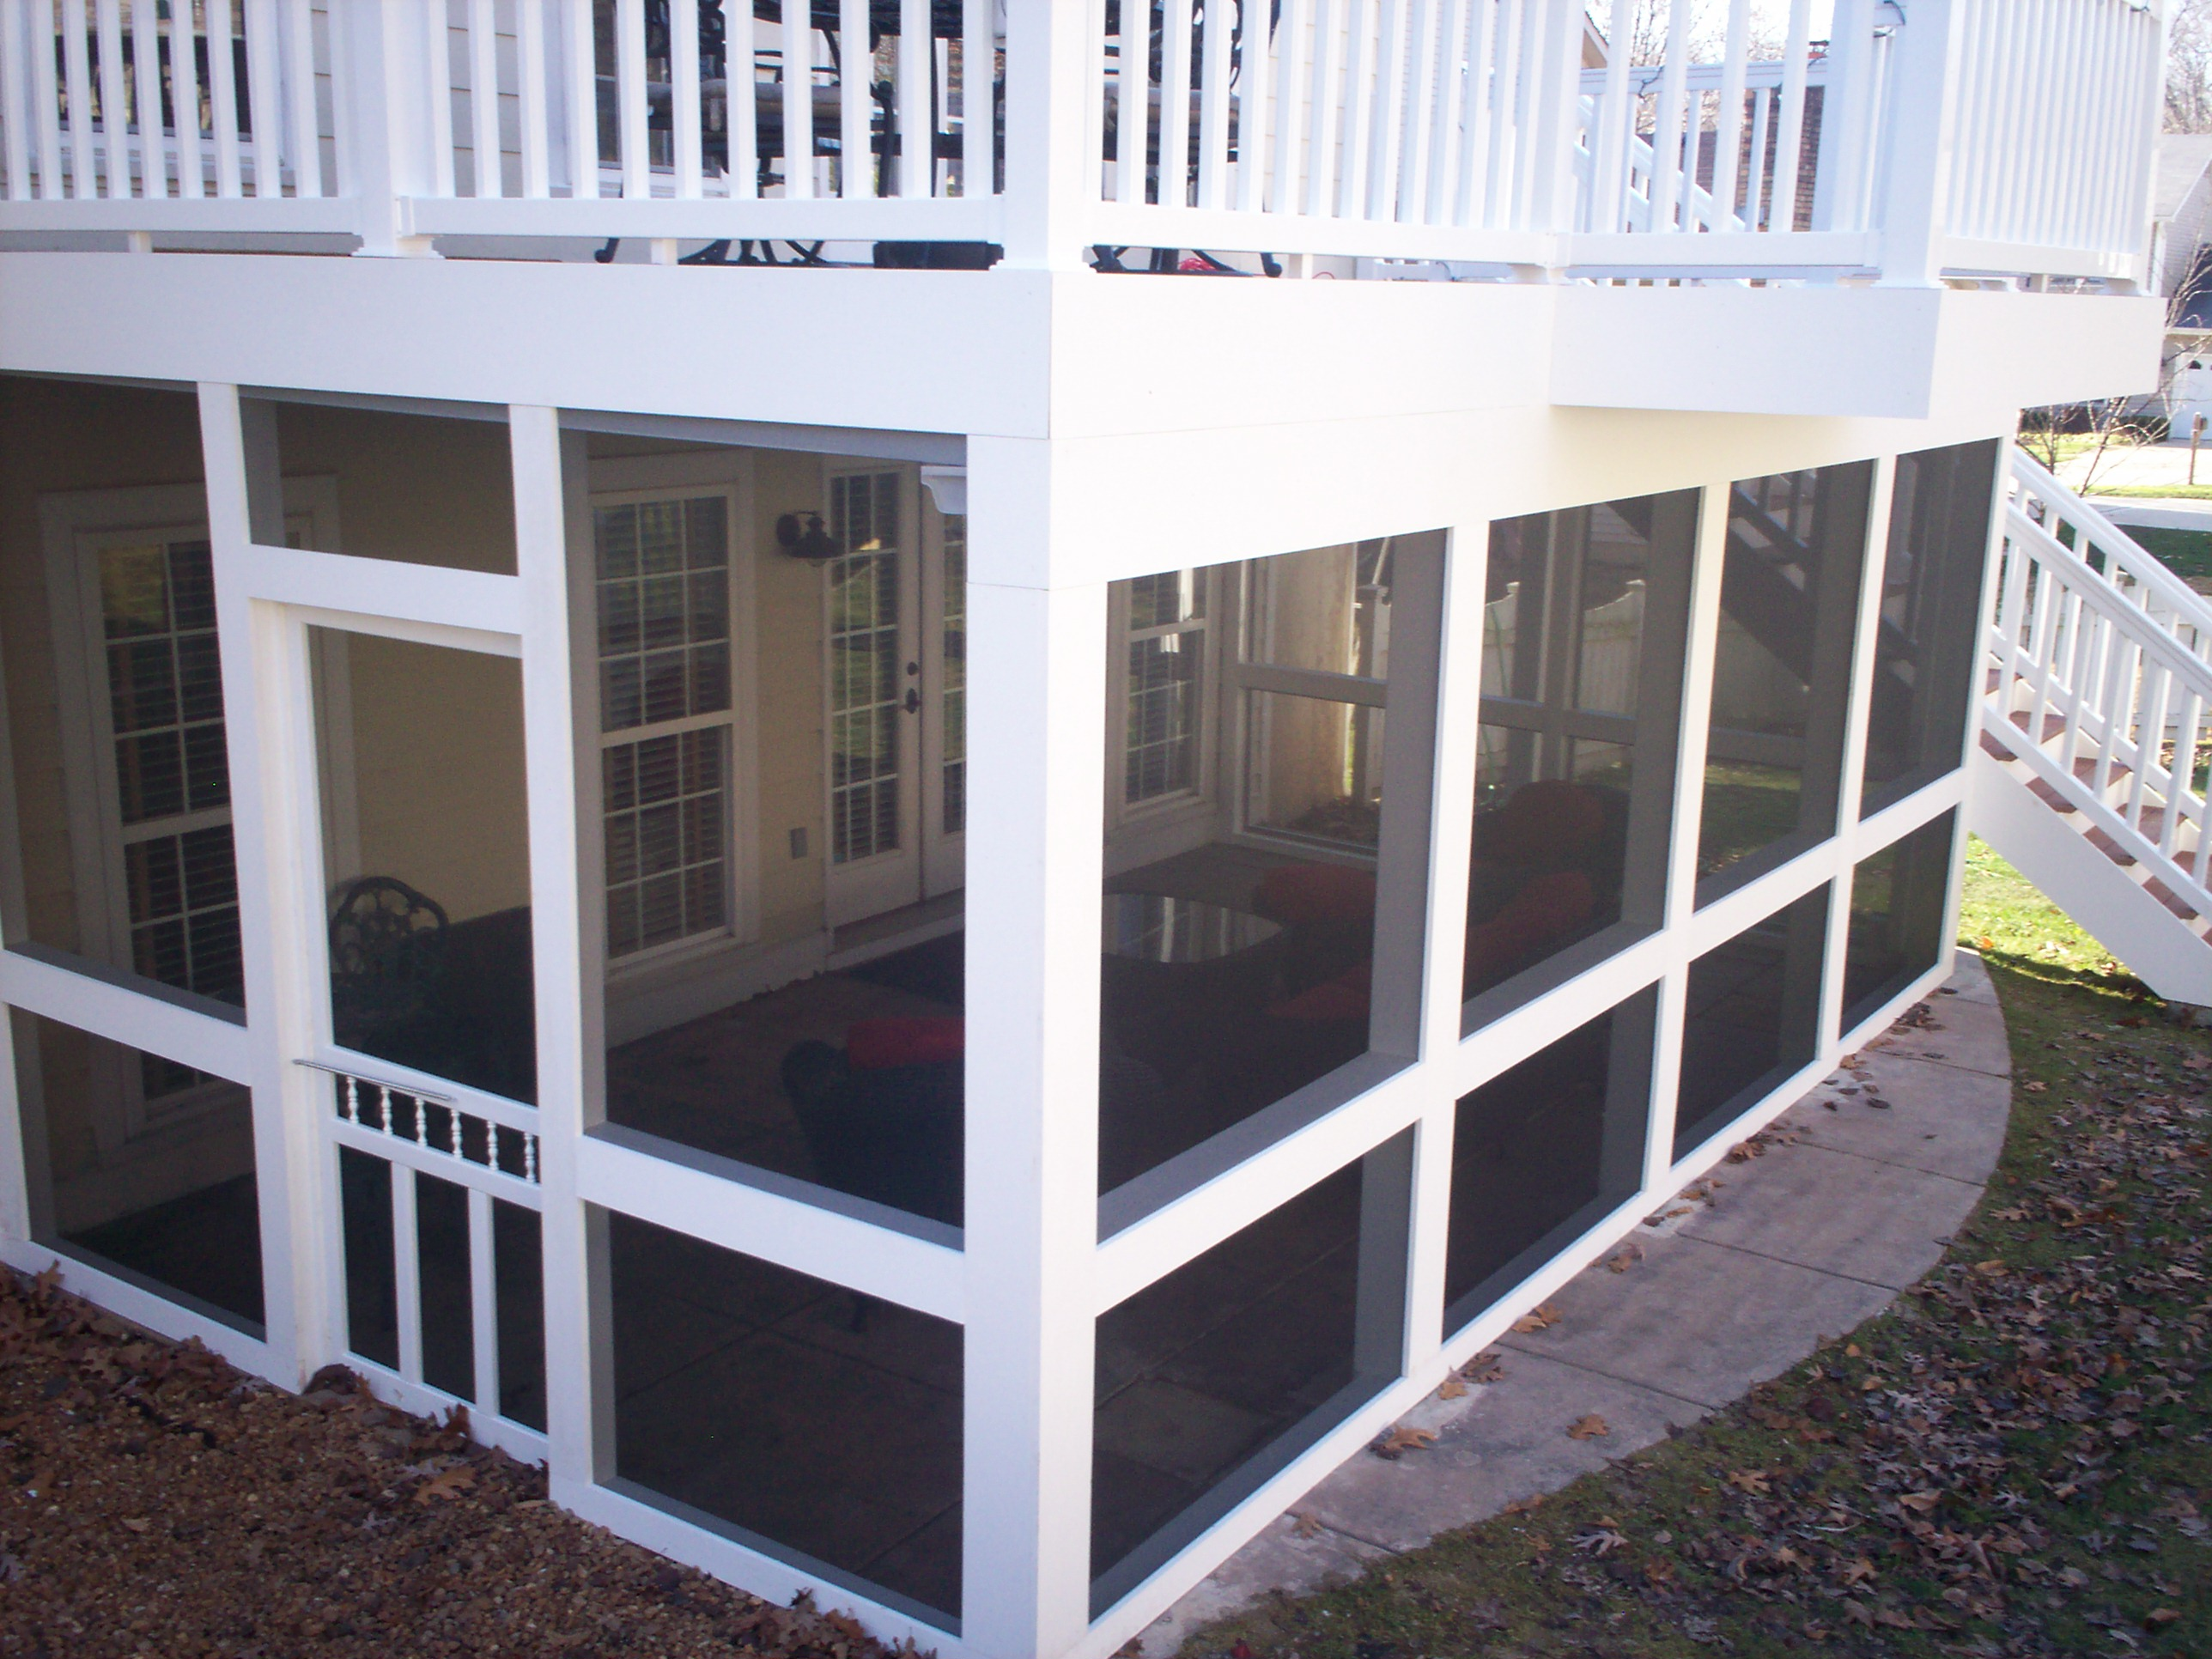 Screened Porches | St. Louis decks, screened porches ... on Deck Over Patio Ideas id=42661